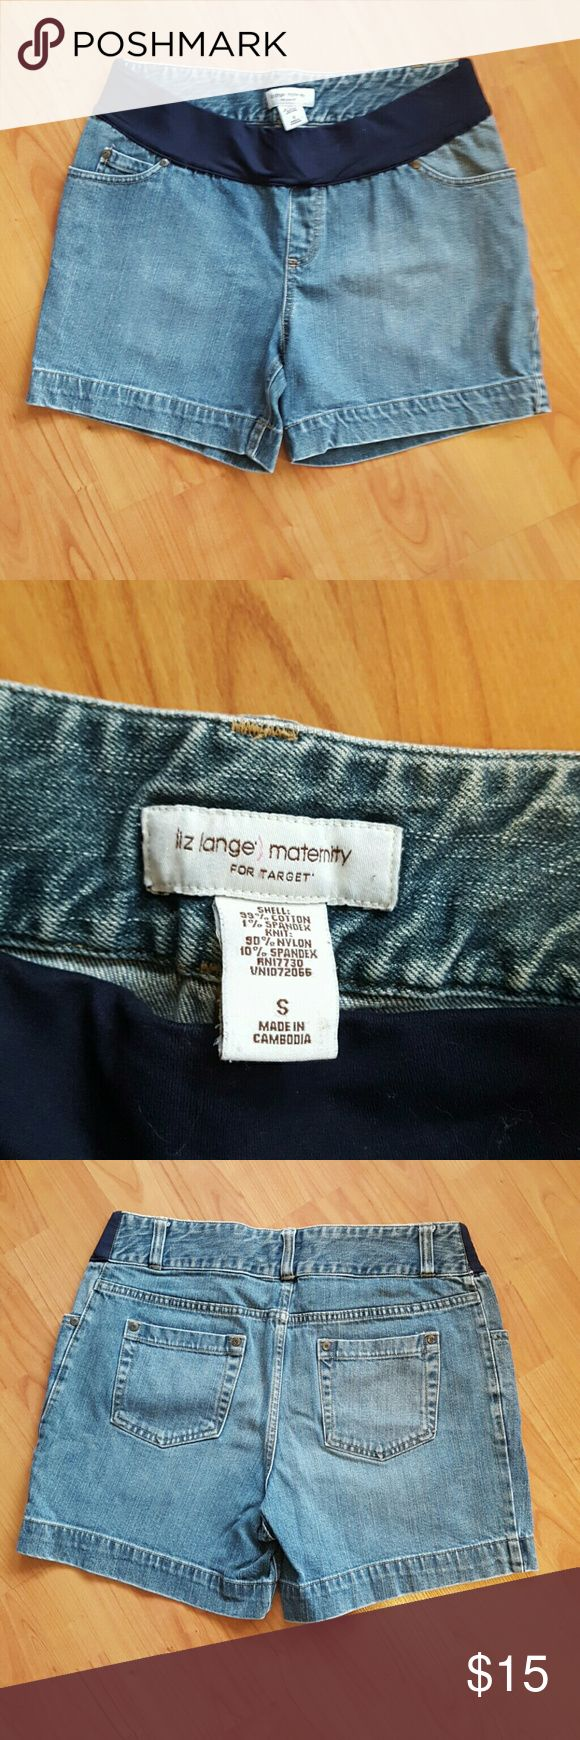 Liz Lange sz small maternity jean shorts Very nice pre-owned condition Liz Lange for Target Shorts Jean Shorts